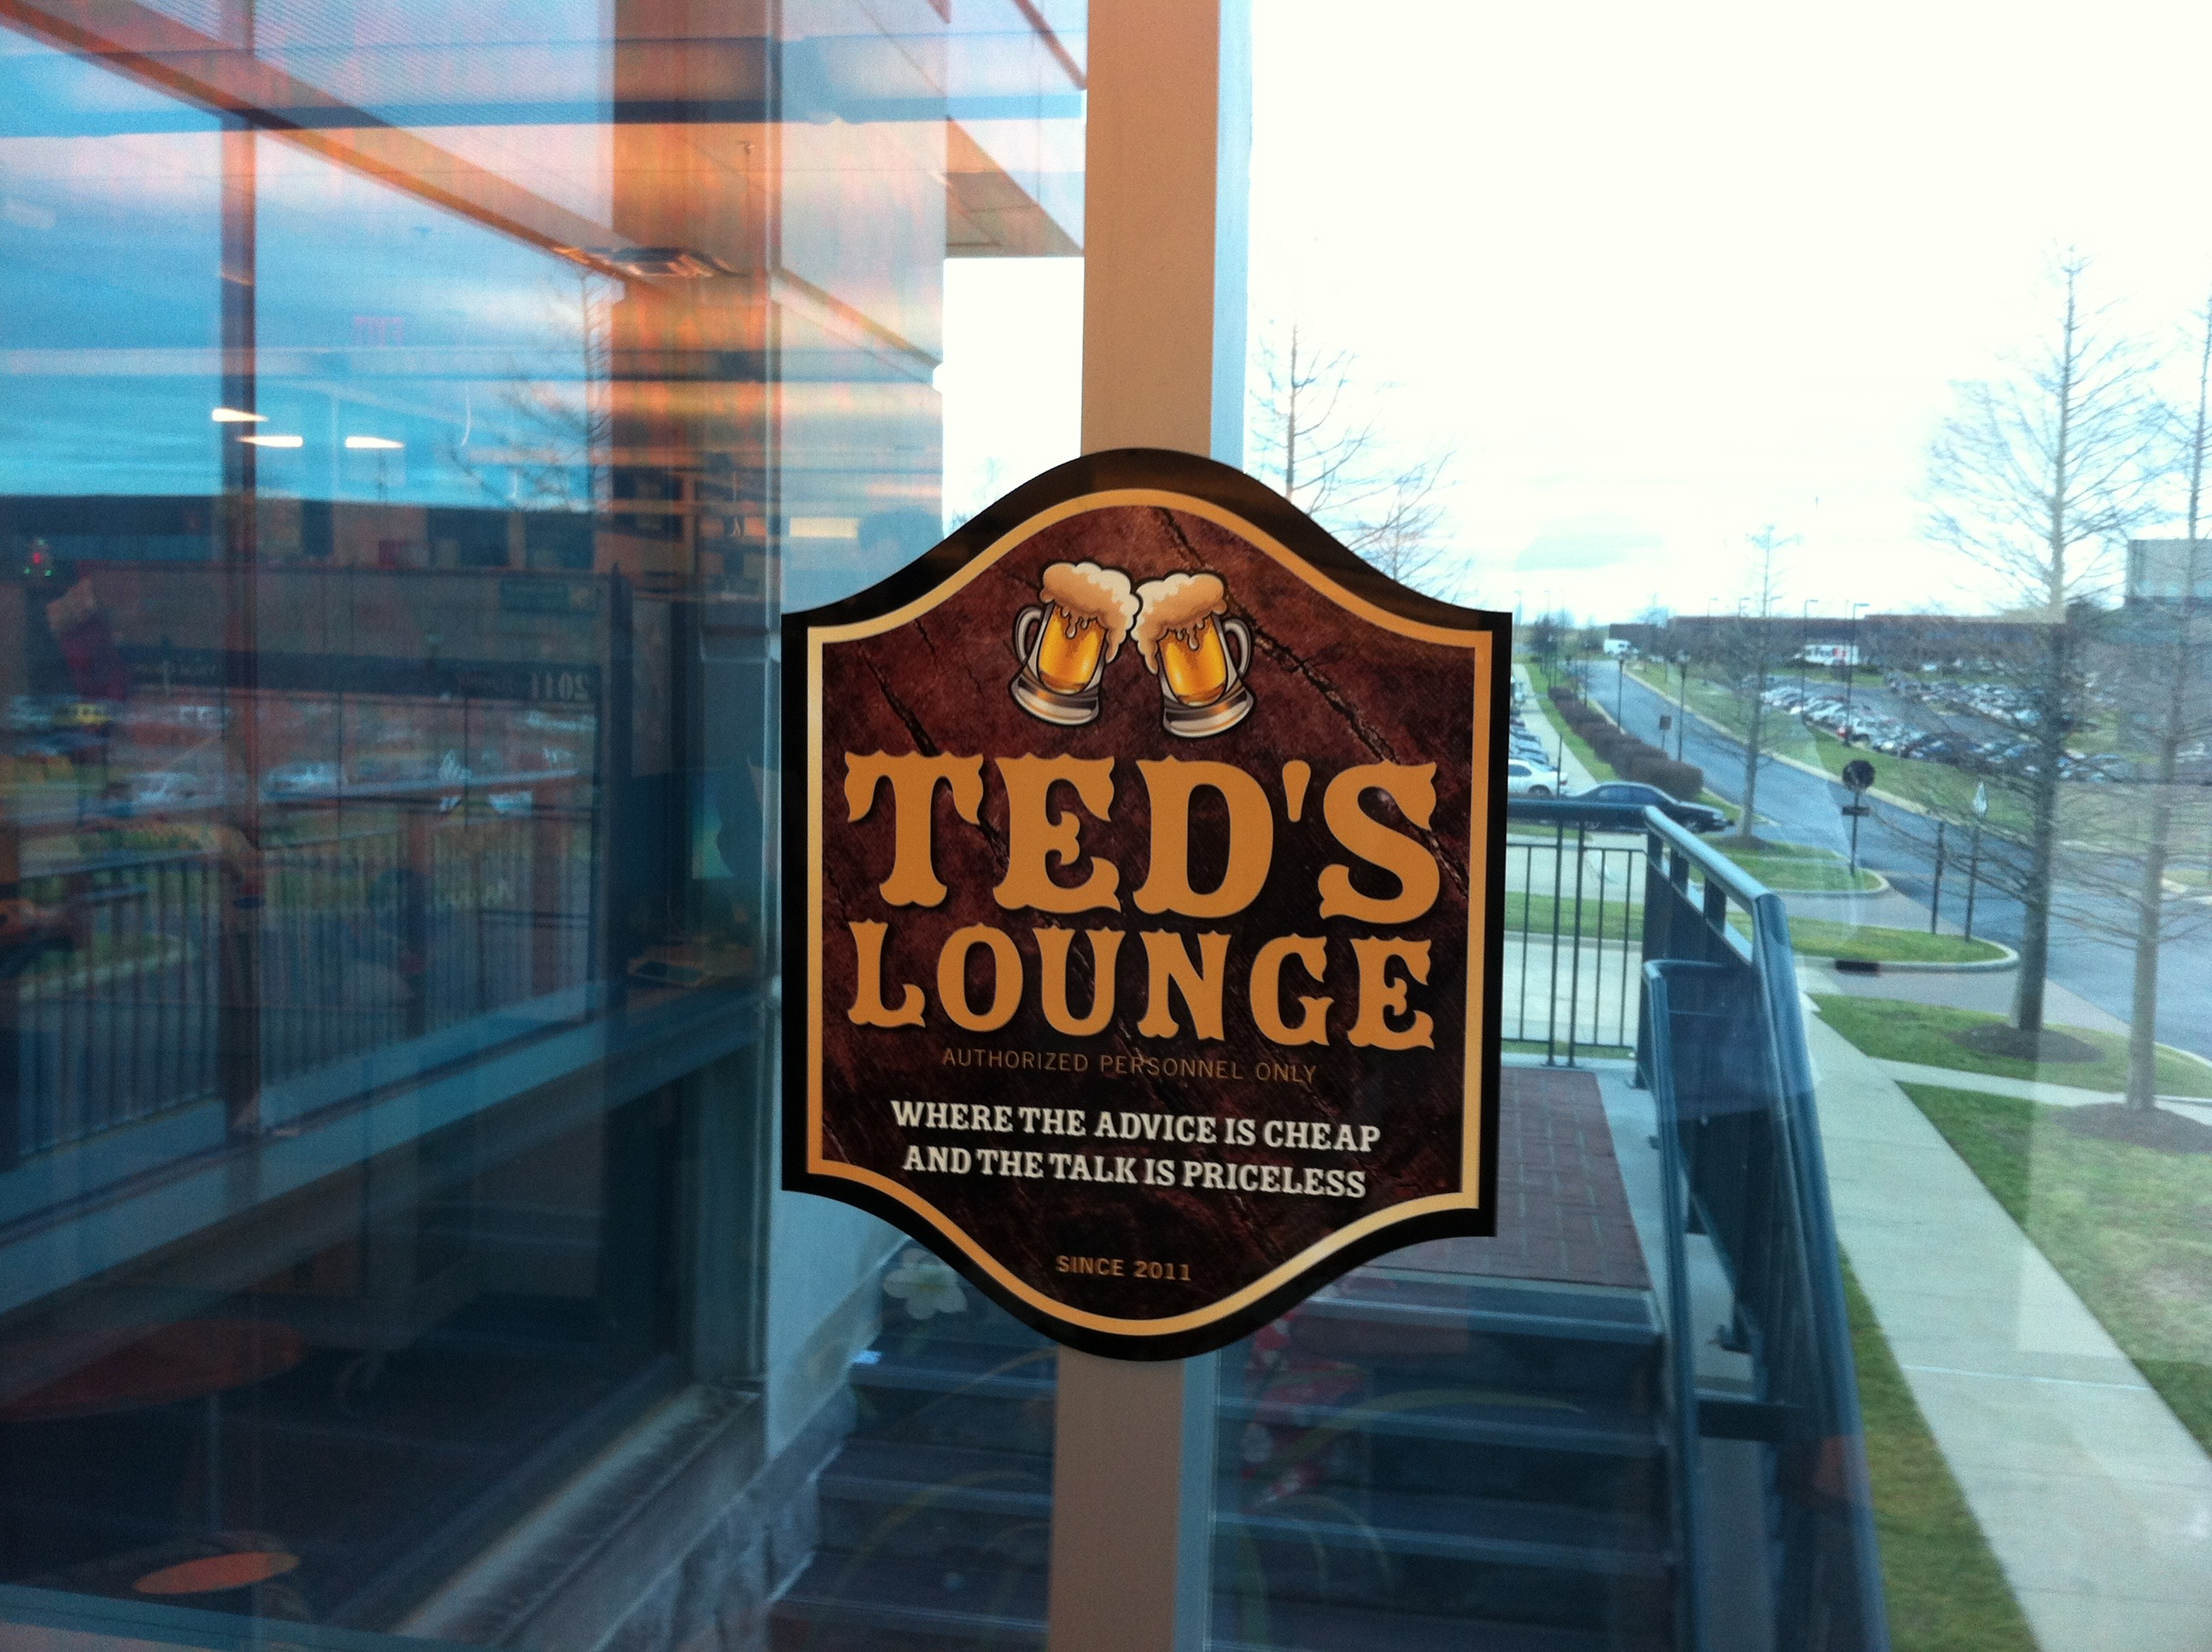 Ted's Lounge #tinychallenges